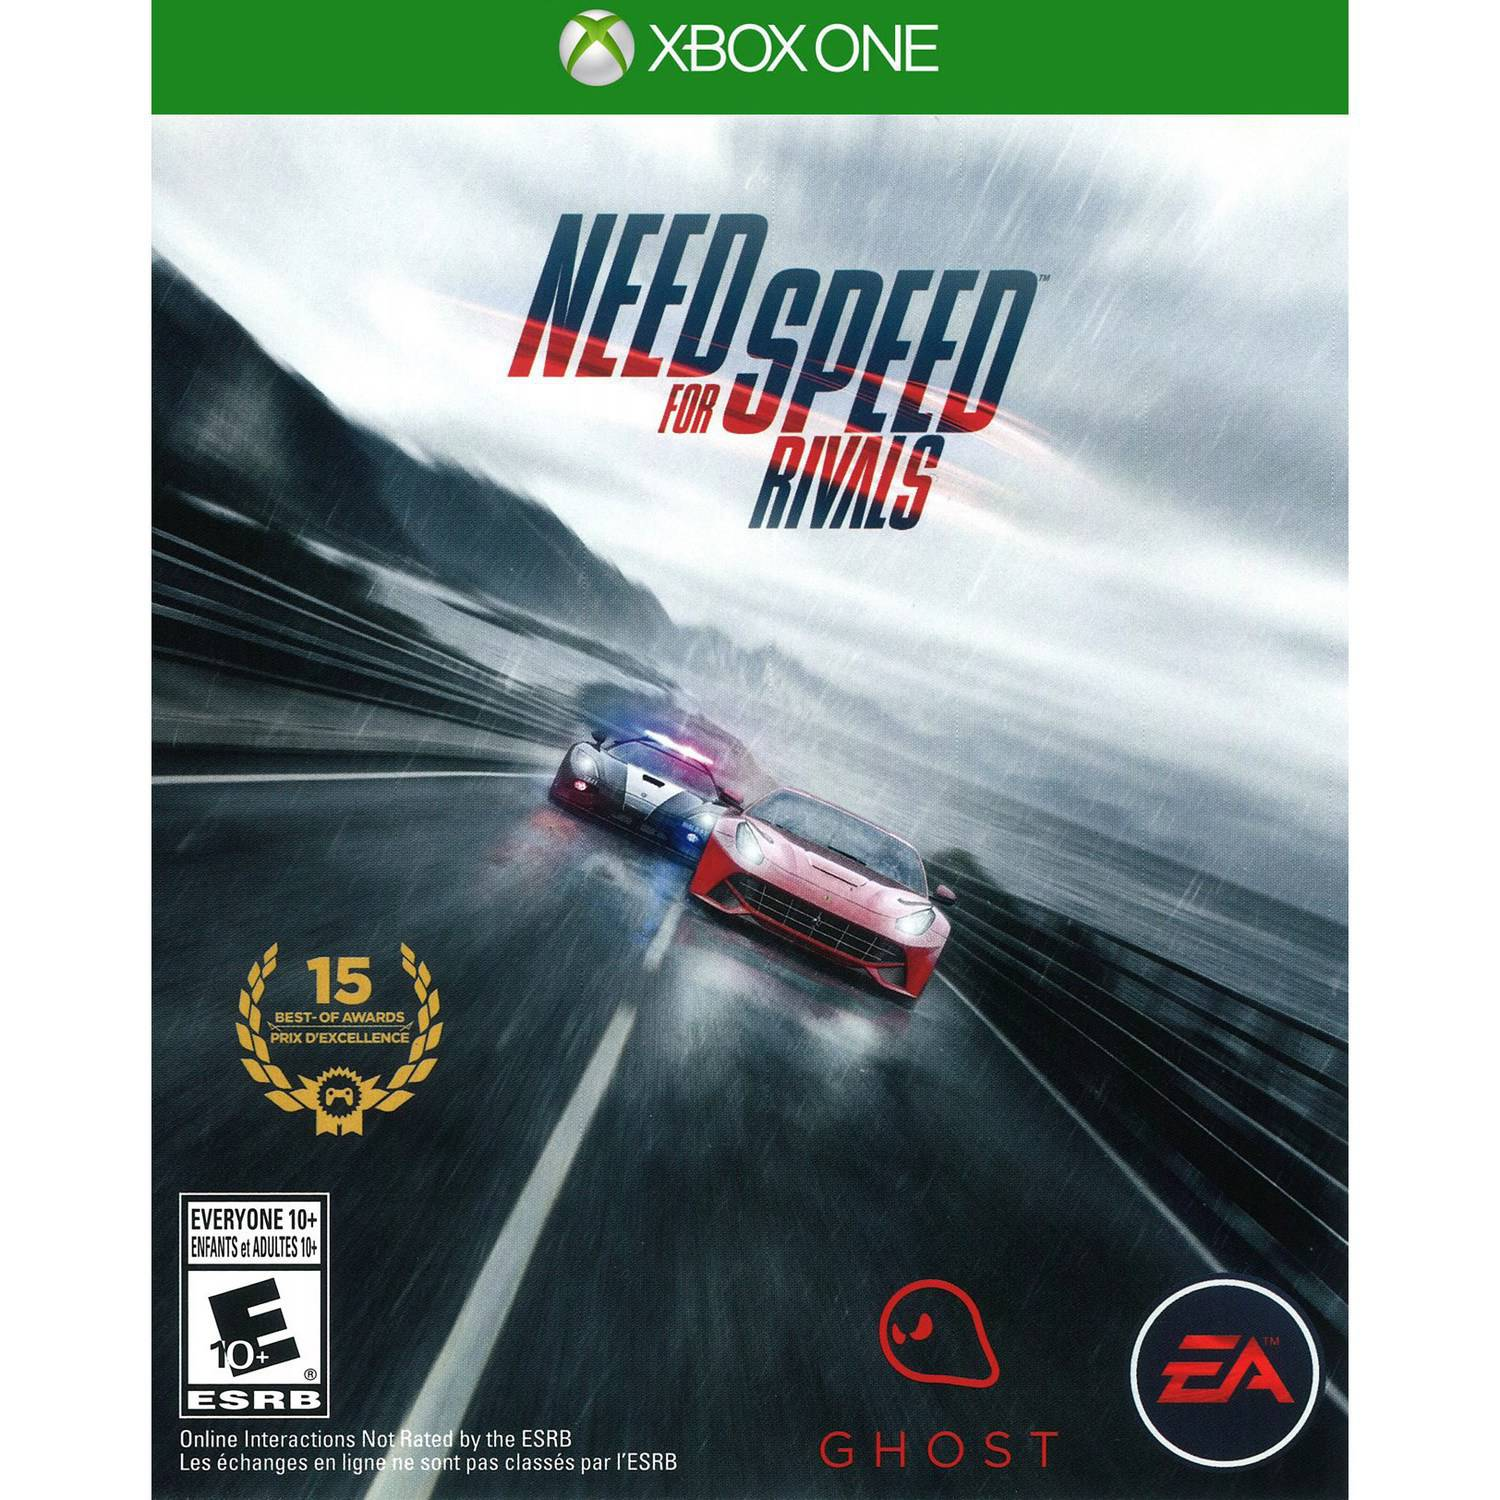 Electronic Arts Need For Speed Rivals (Xbox One) - Pre-Owned